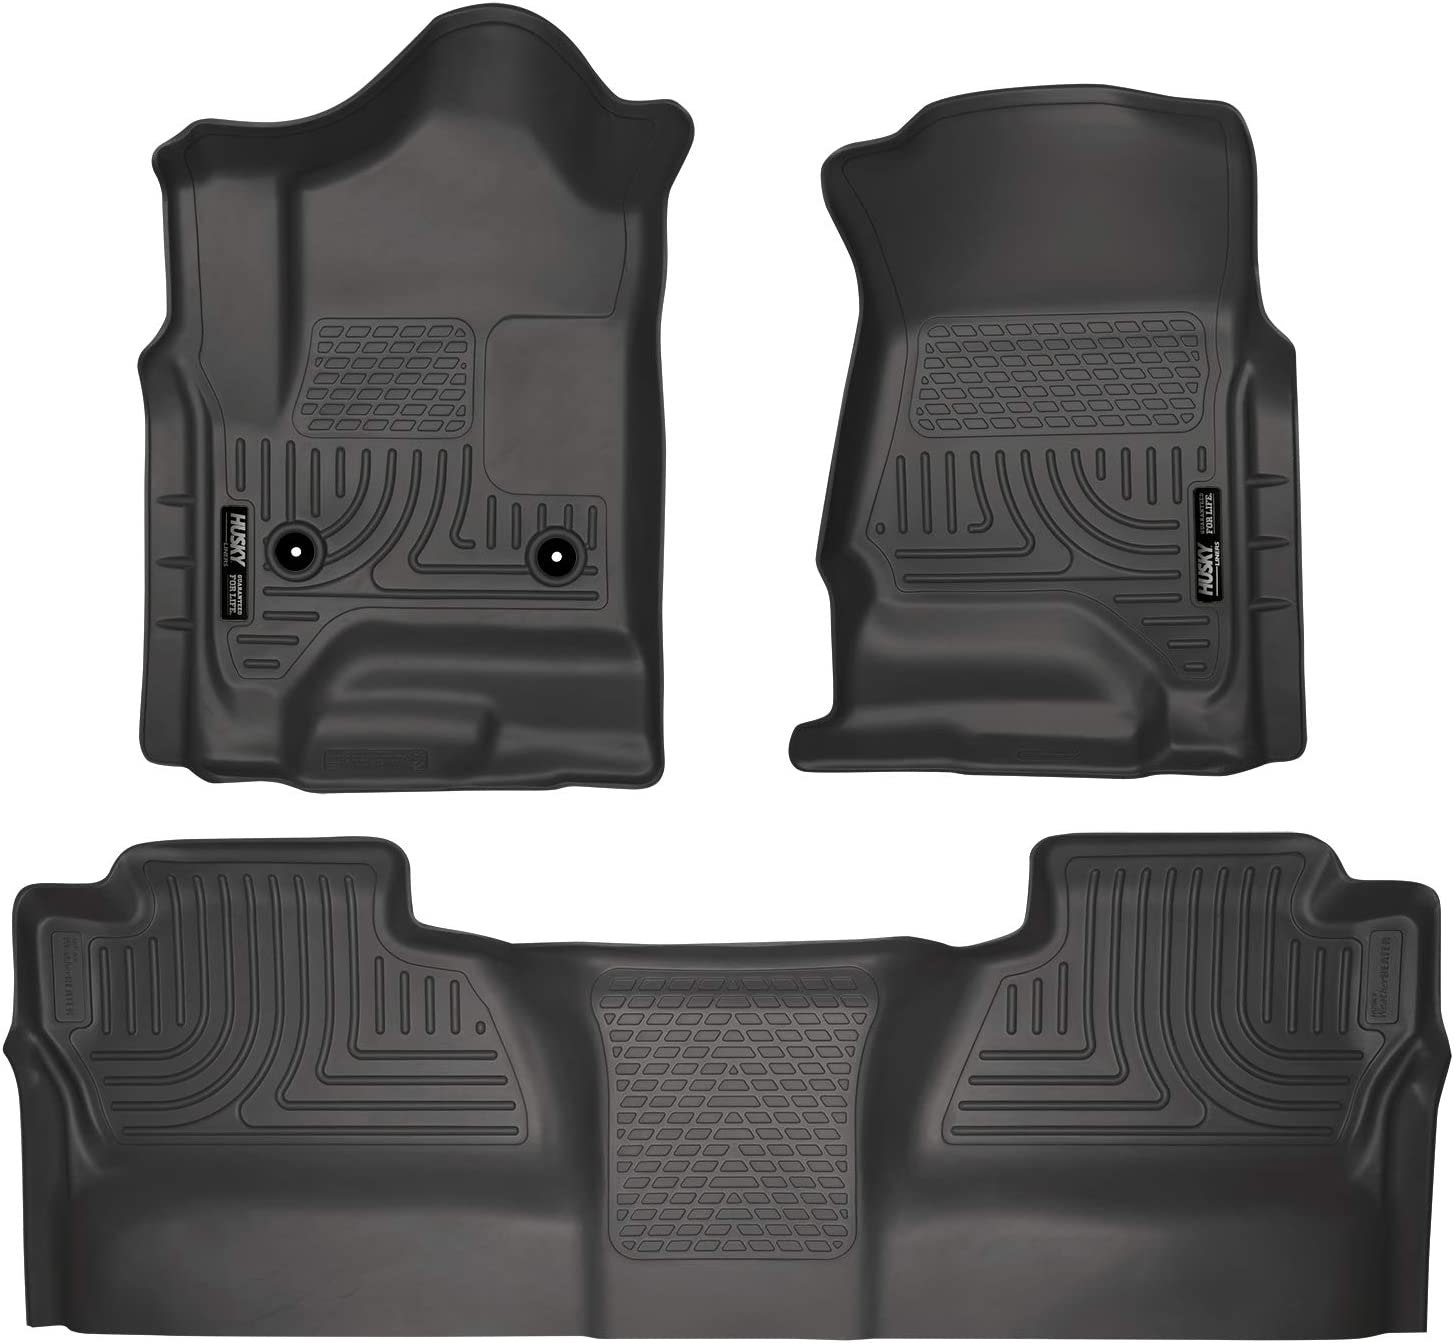 Husky Liners 98231 Black Weatherbeater Front & 2nd Seat Floor Liners Fits 2014-2018 Chevrolet-GMC Silverado/Sierra 1500 Crew Cab, 2015-2019 Chevrolet-GMC Silverado/Sierra 2500/3500 HD Crew Cab